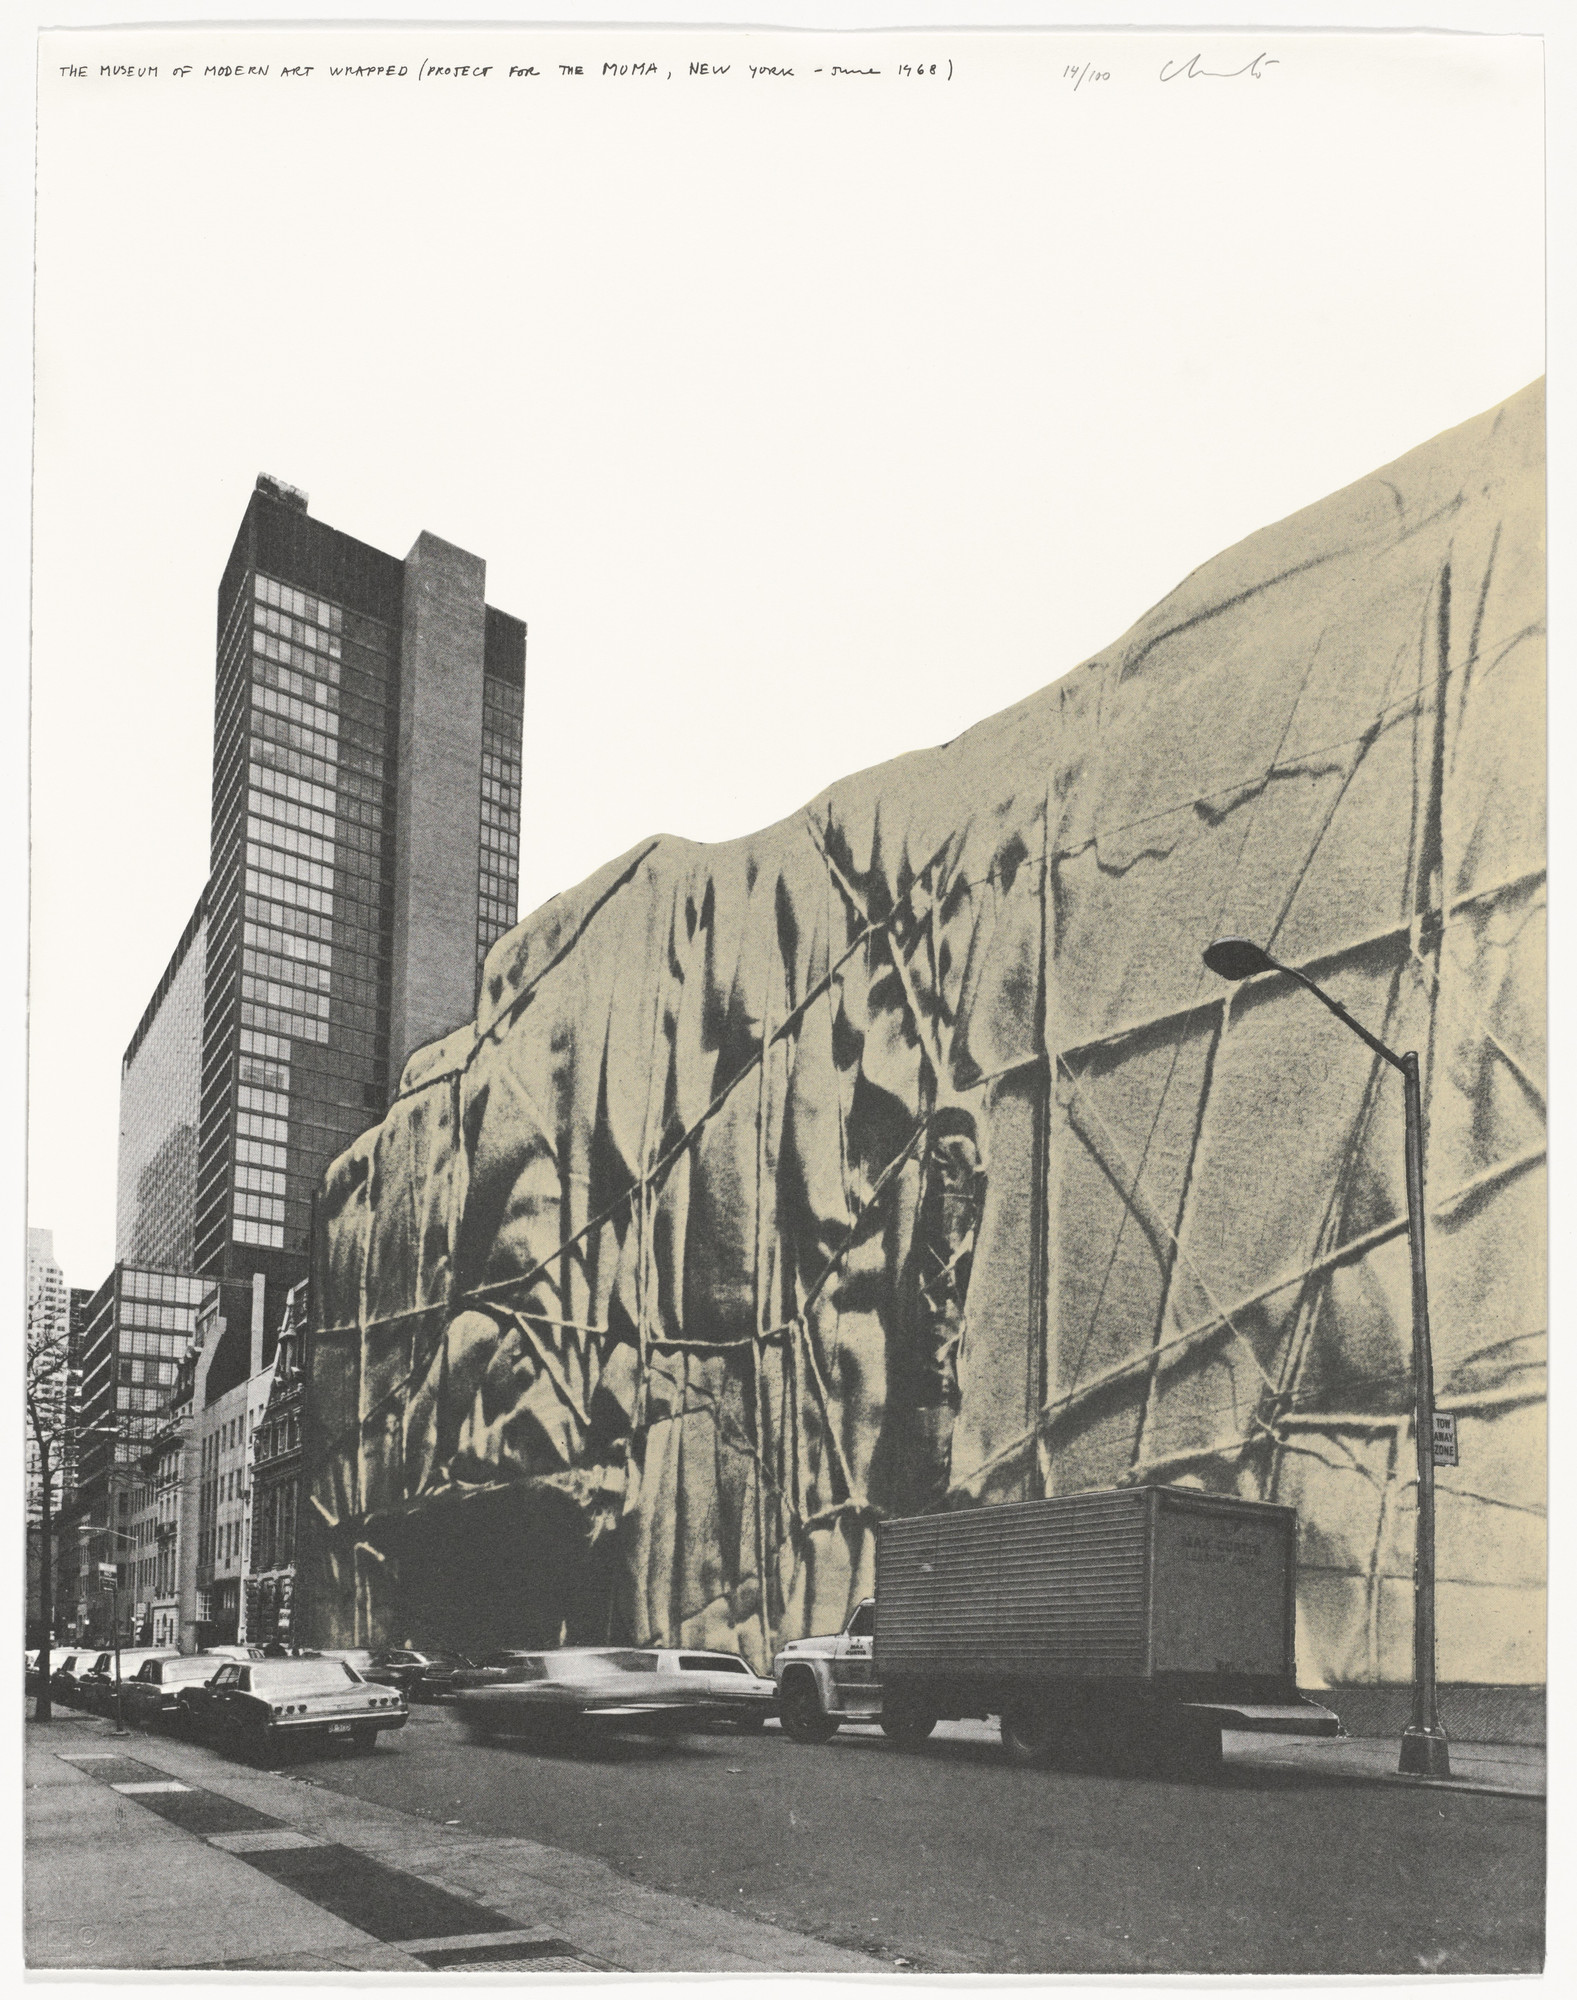 Christo. The Museum of Modern Art, Wrapped (Front), Project for New York from the portfolio (Some) Not Realized Projects. April 9 and September 27, 1971